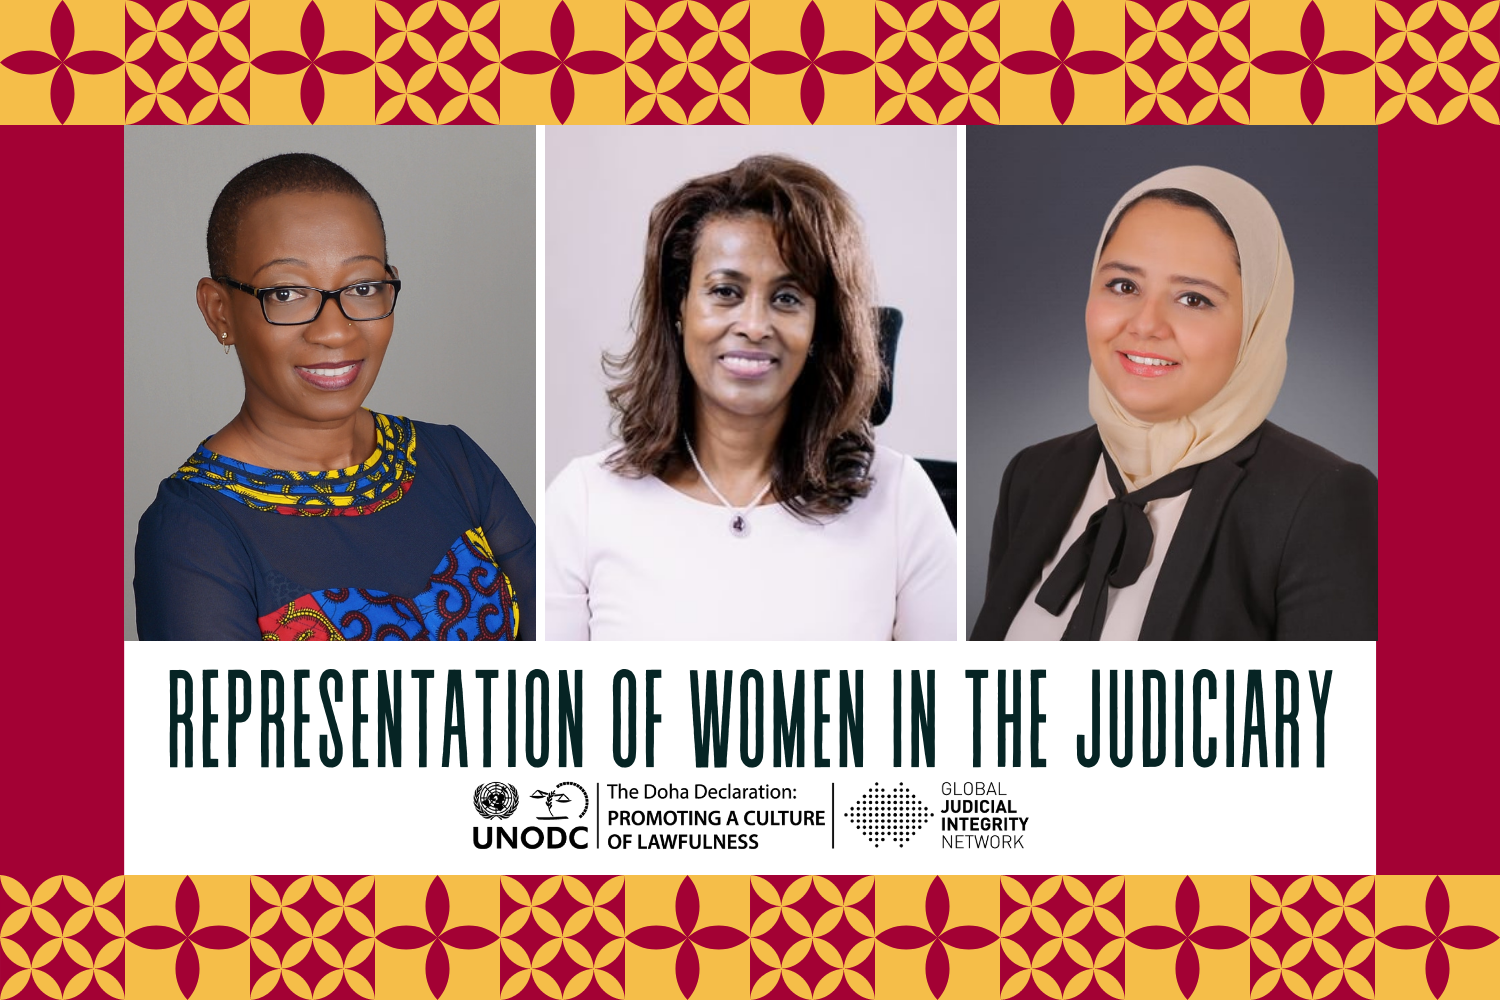 Progress towards Parity: The Representation of Women in the Judiciary